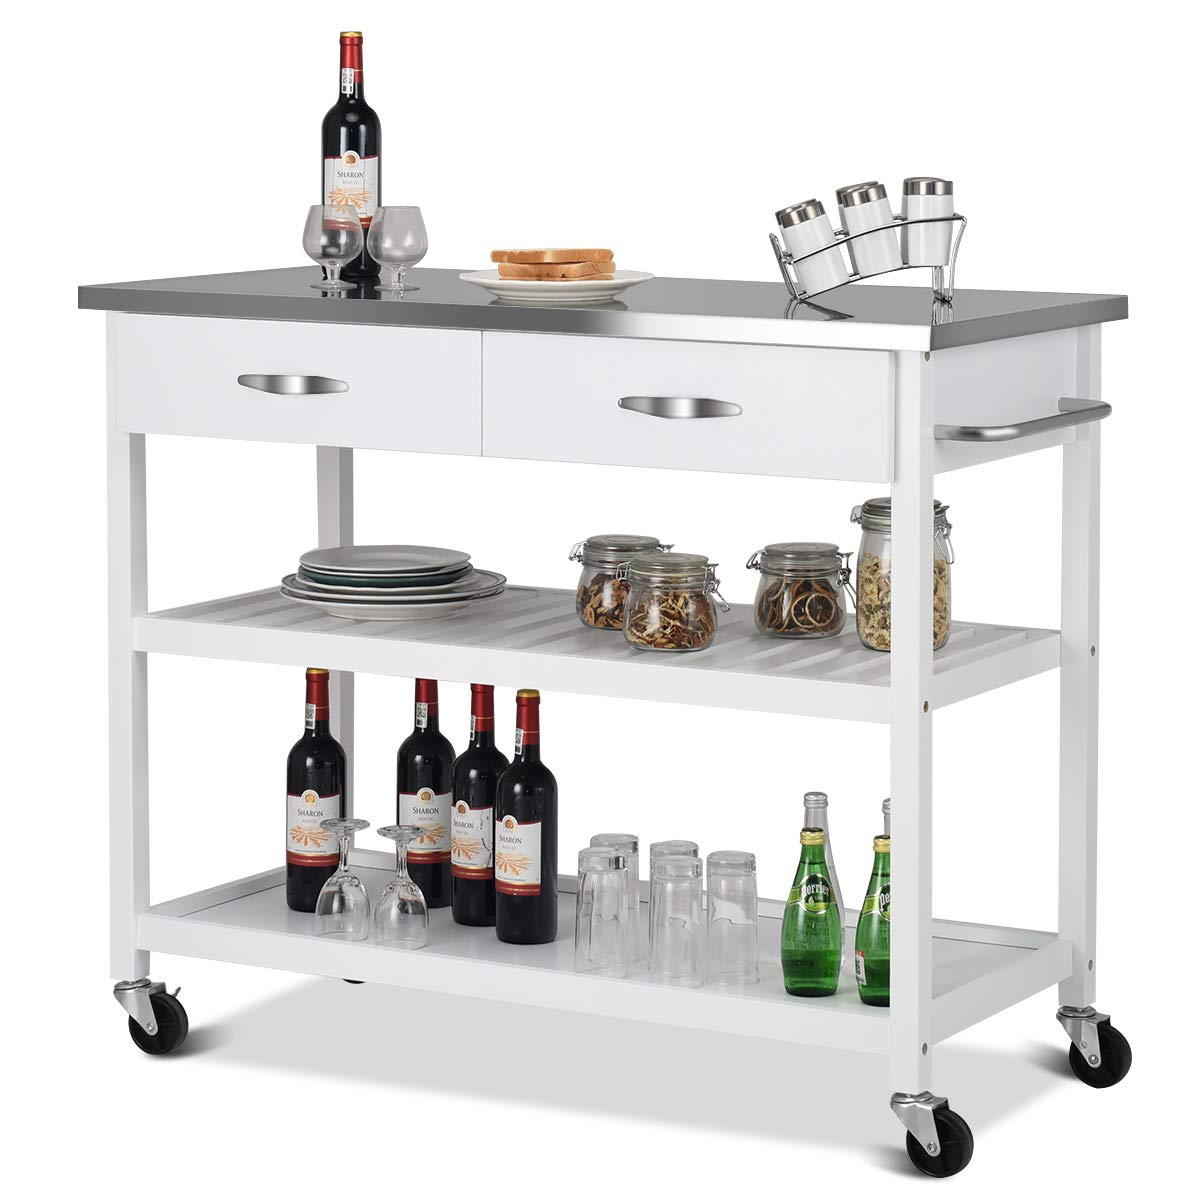 Giantex Kitchen Trolley Cart Rolling Island Cart Serving Cart Large Storage with Stainless Steel Countertop, Lockable Wheels, 2 Drawers and Shelf Utility Cart for Home and Restaurant, (White)